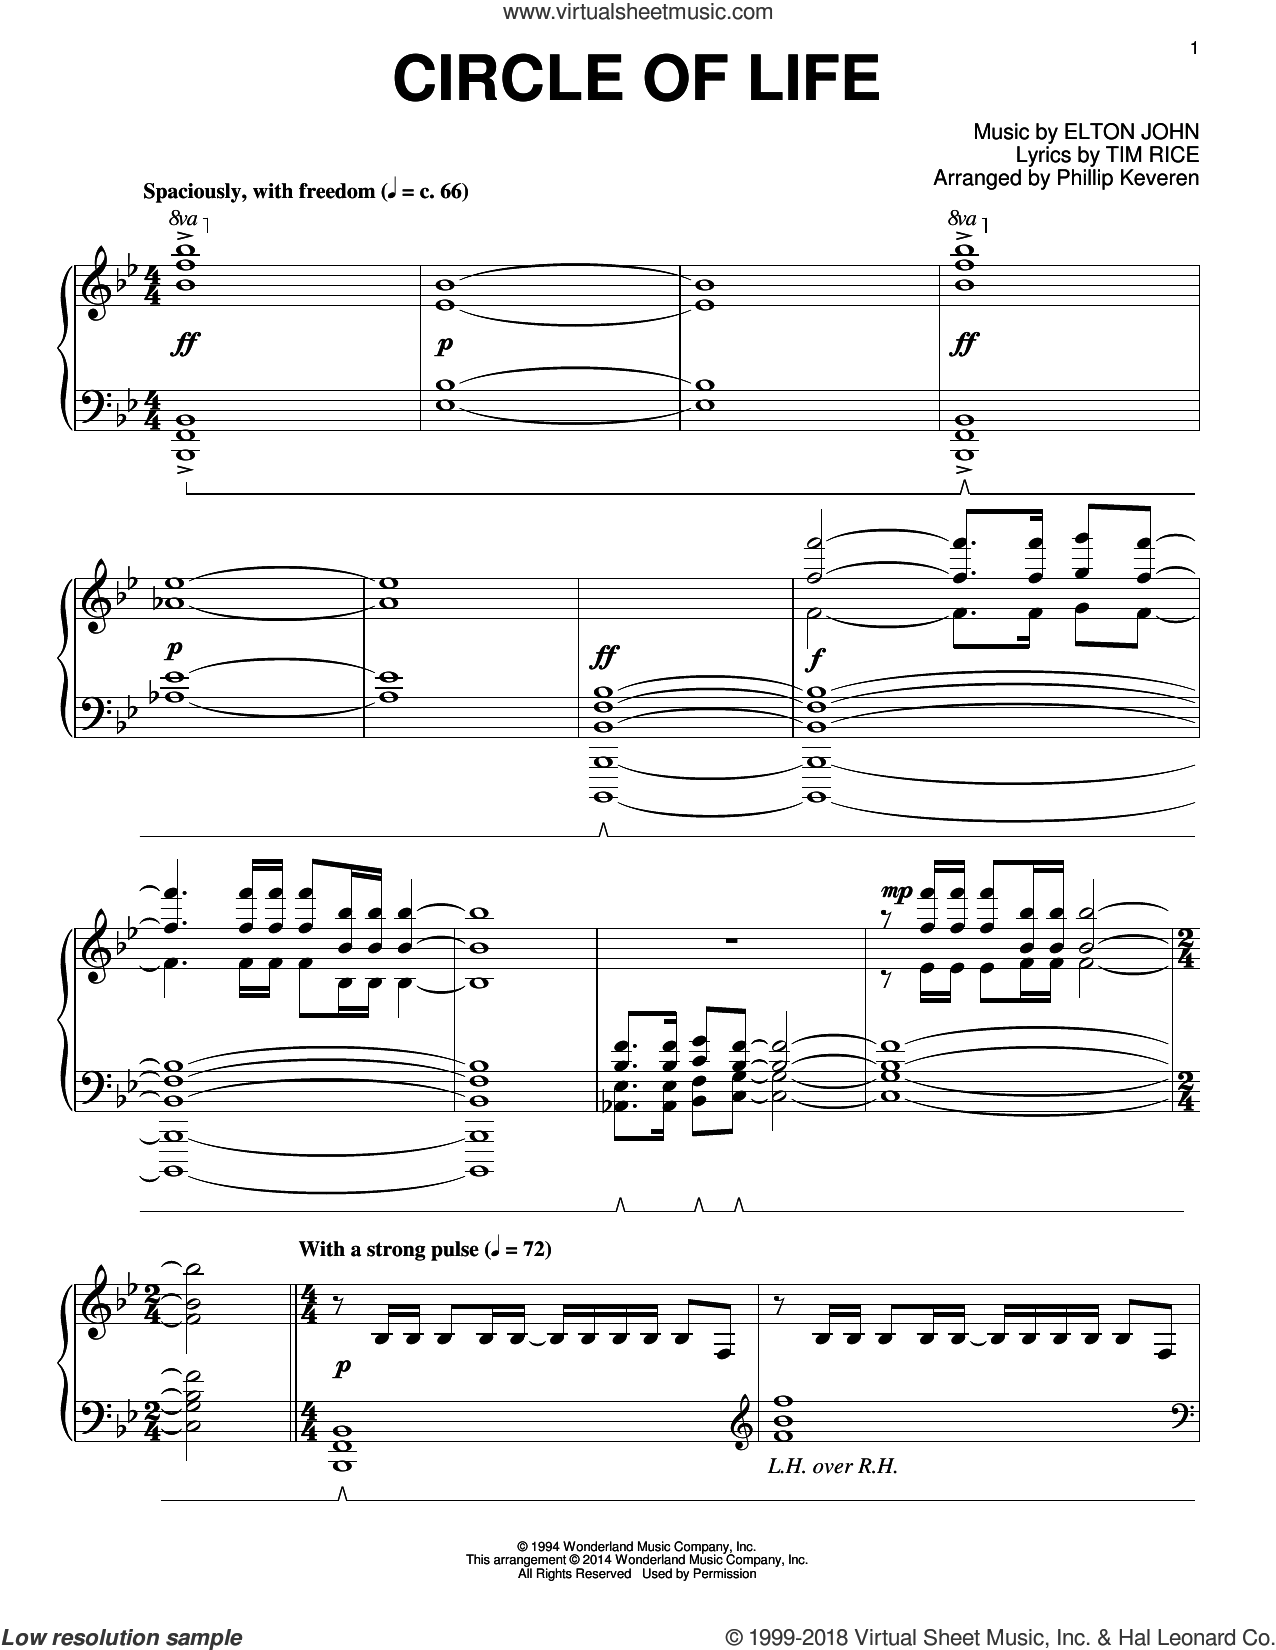 Circle Of Life [Classical version] (arr. Phillip Keveren) sheet music for piano solo by Phillip Keveren, Elton John and Tim Rice, intermediate skill level